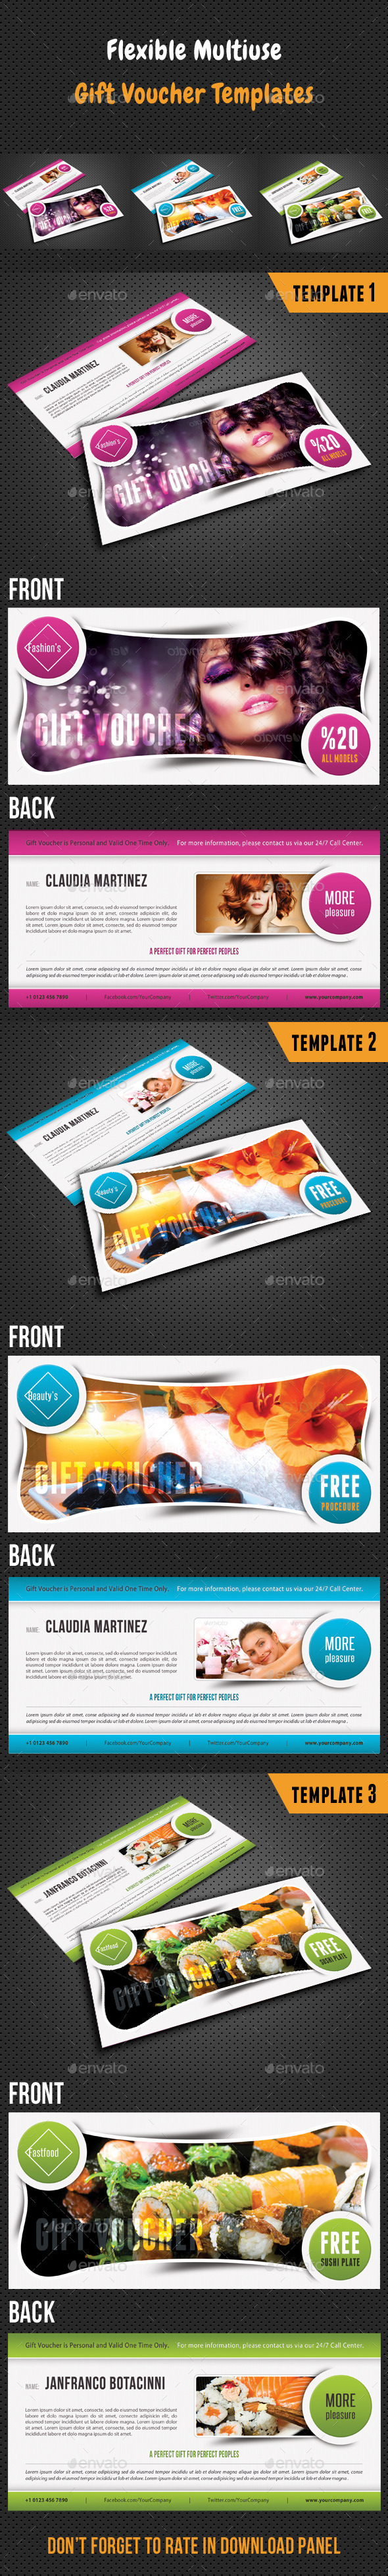 GraphicRiver Flexible Gift Voucher V02 8888359